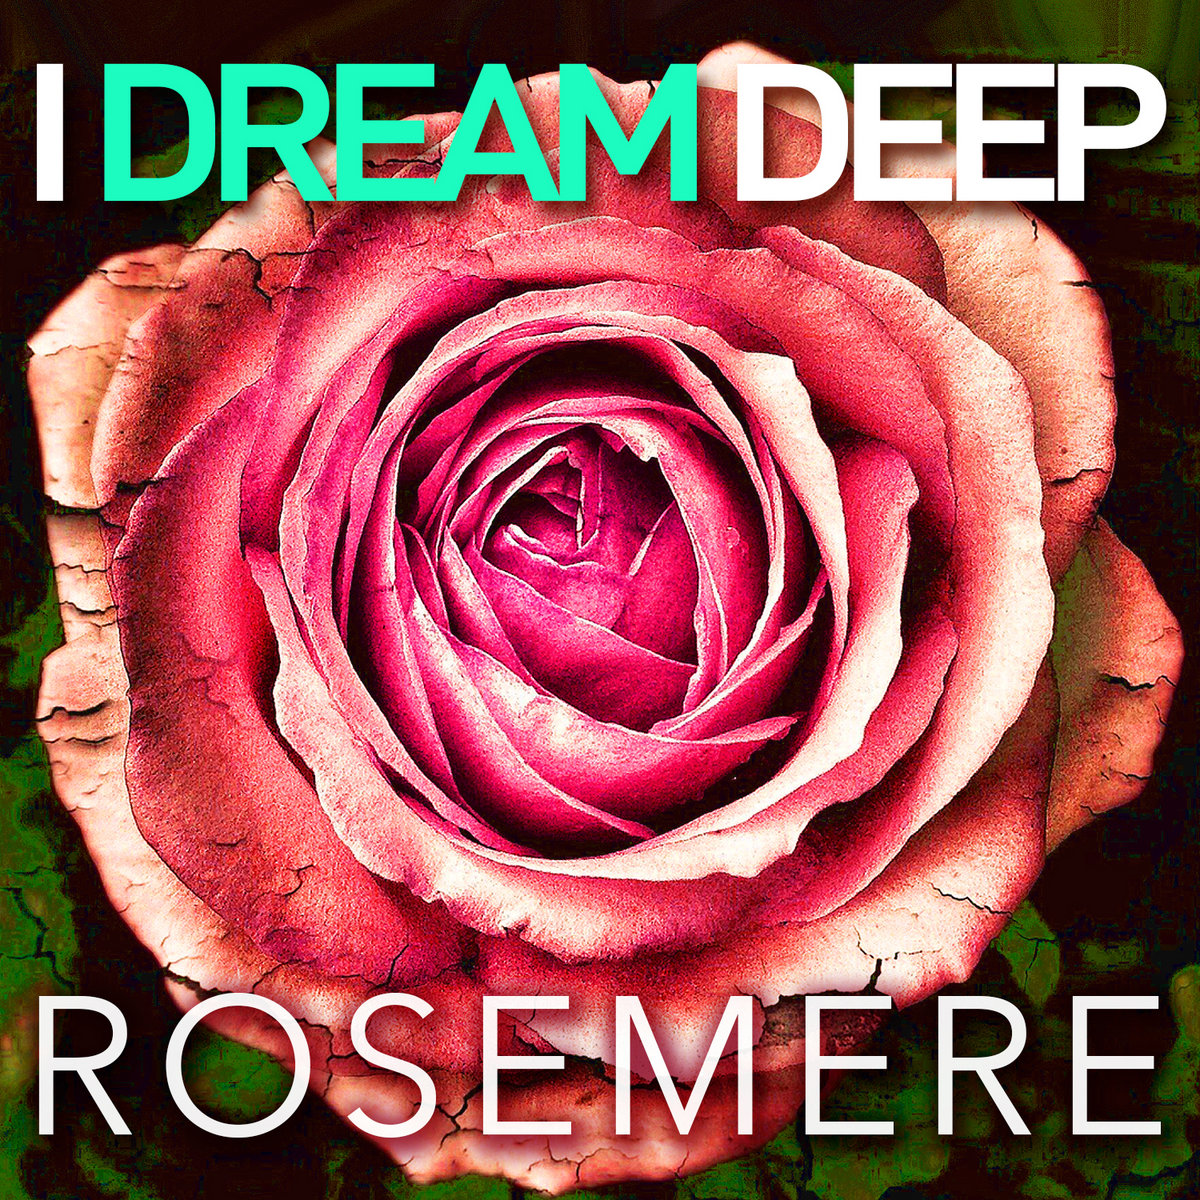 Rosemere by I Dream Deep